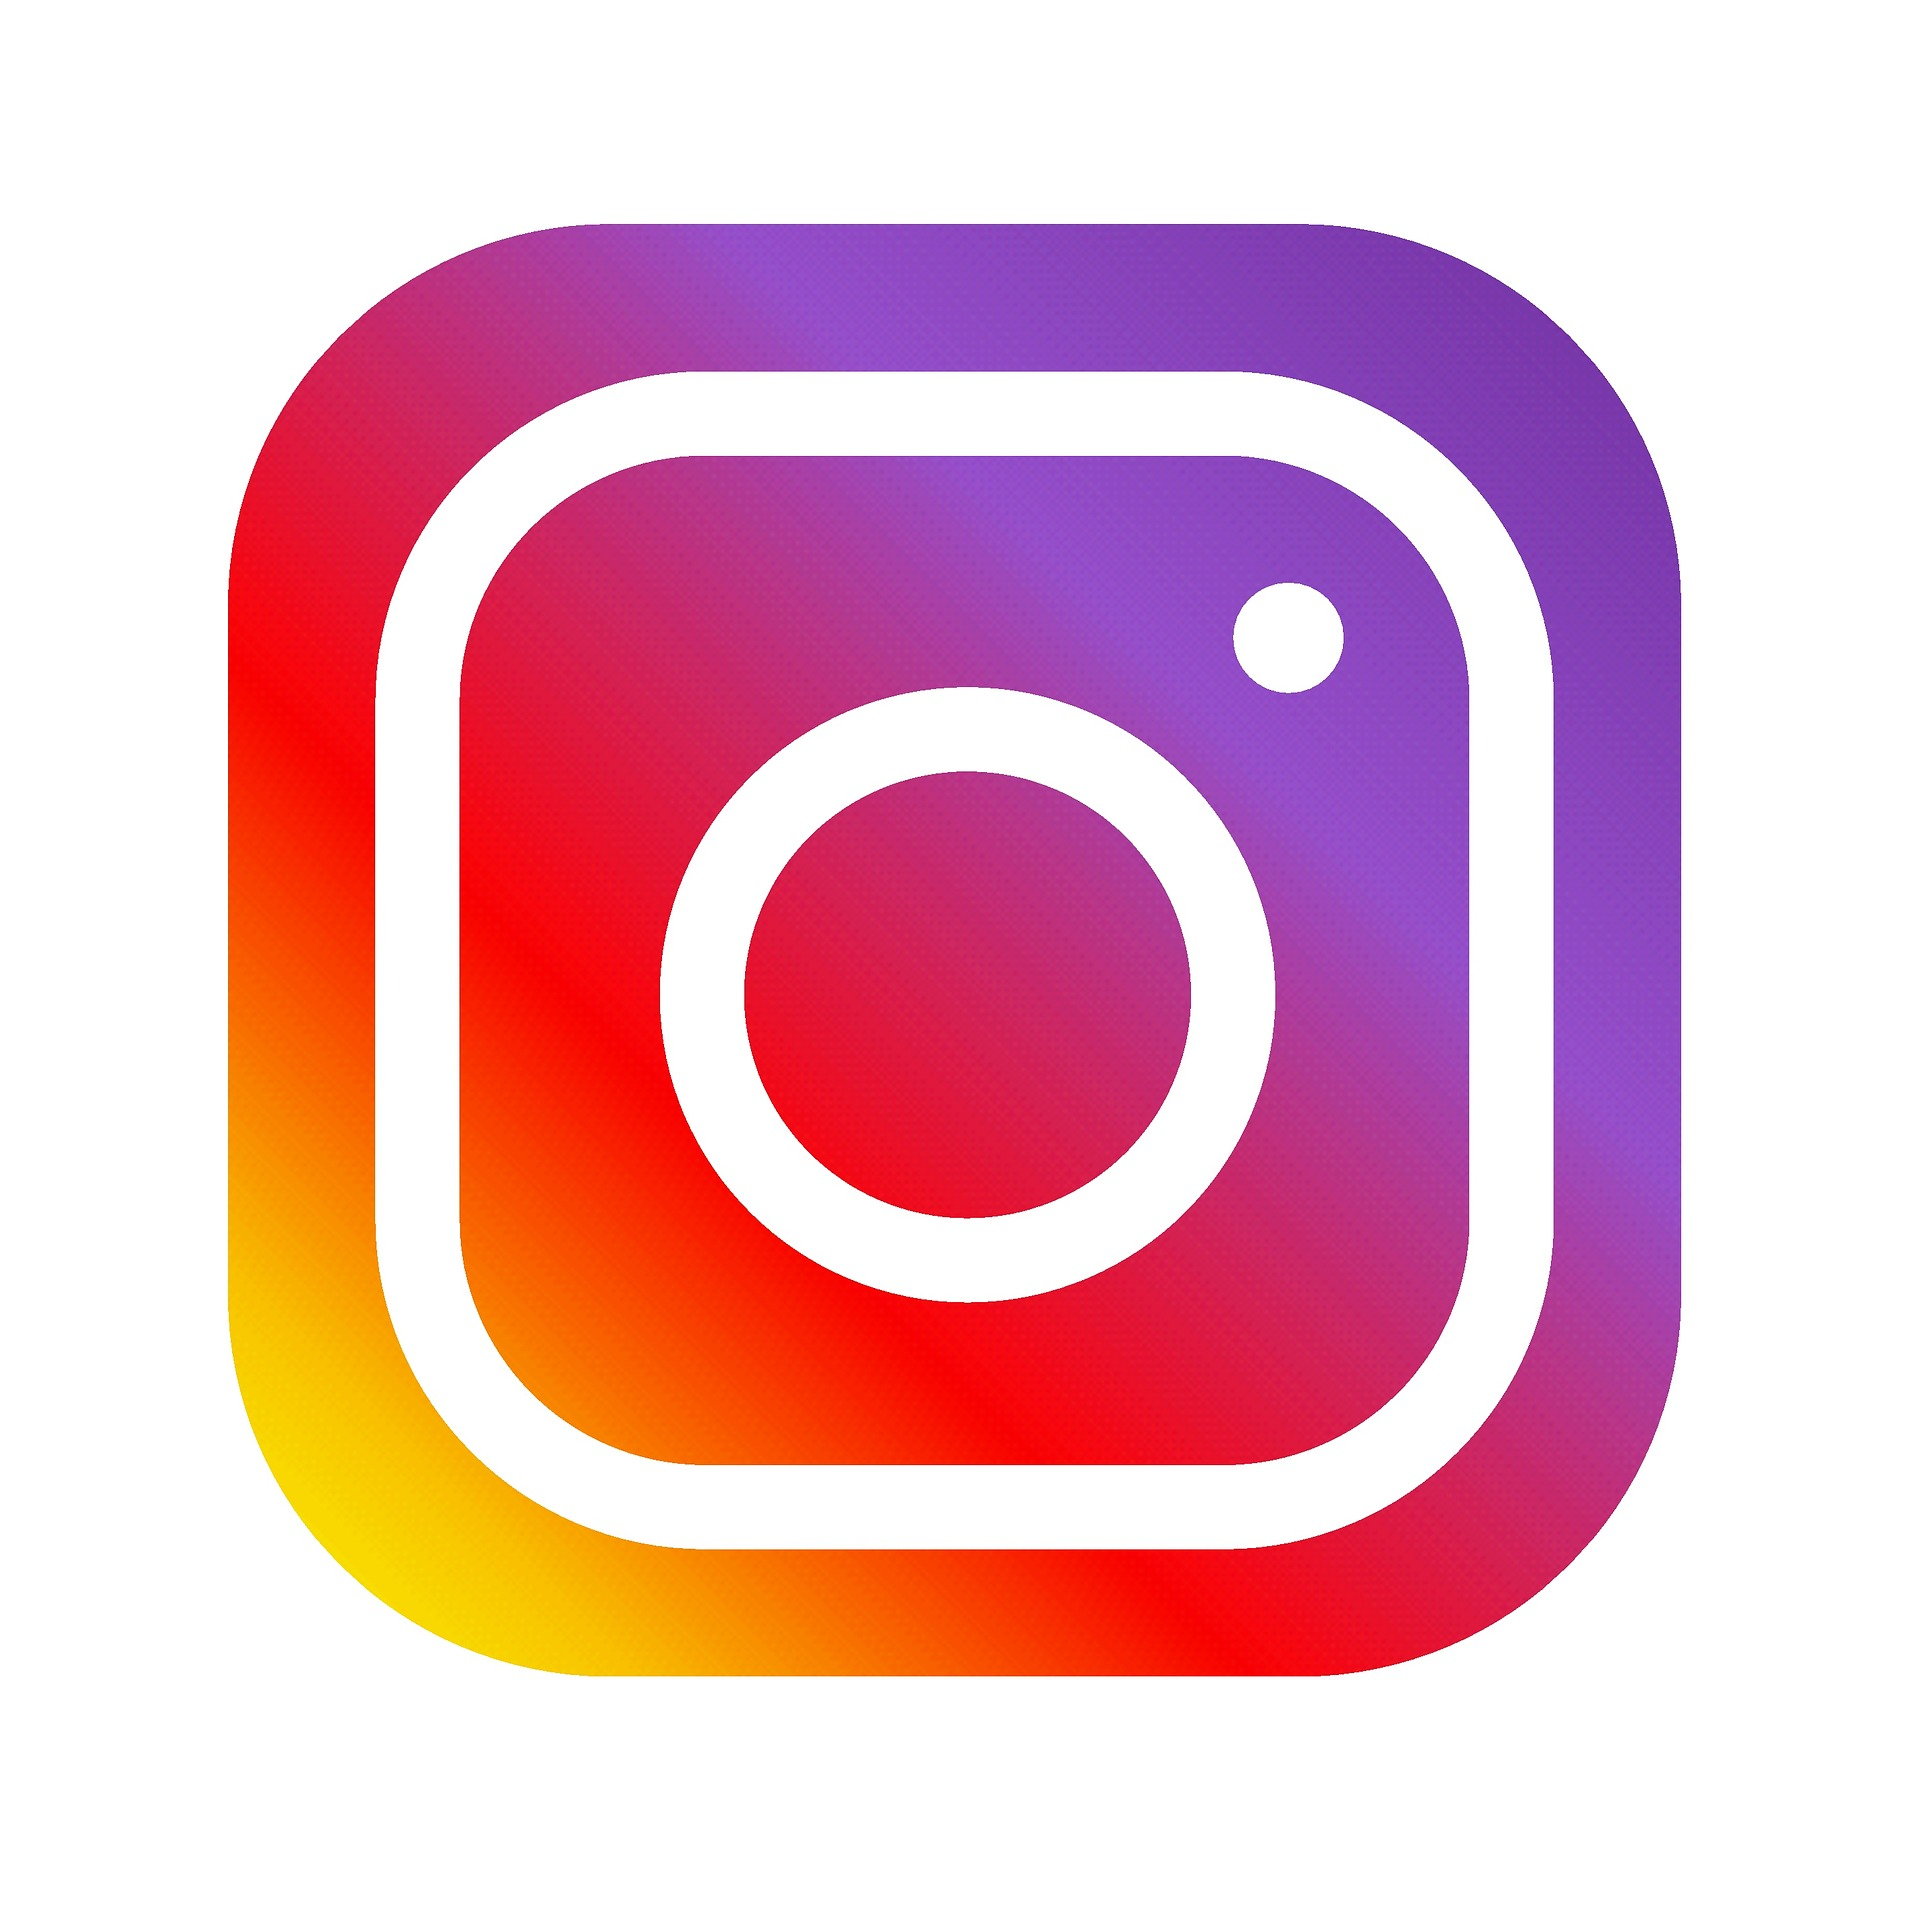 Instagram is a great platform for construction contractors to use for marketing